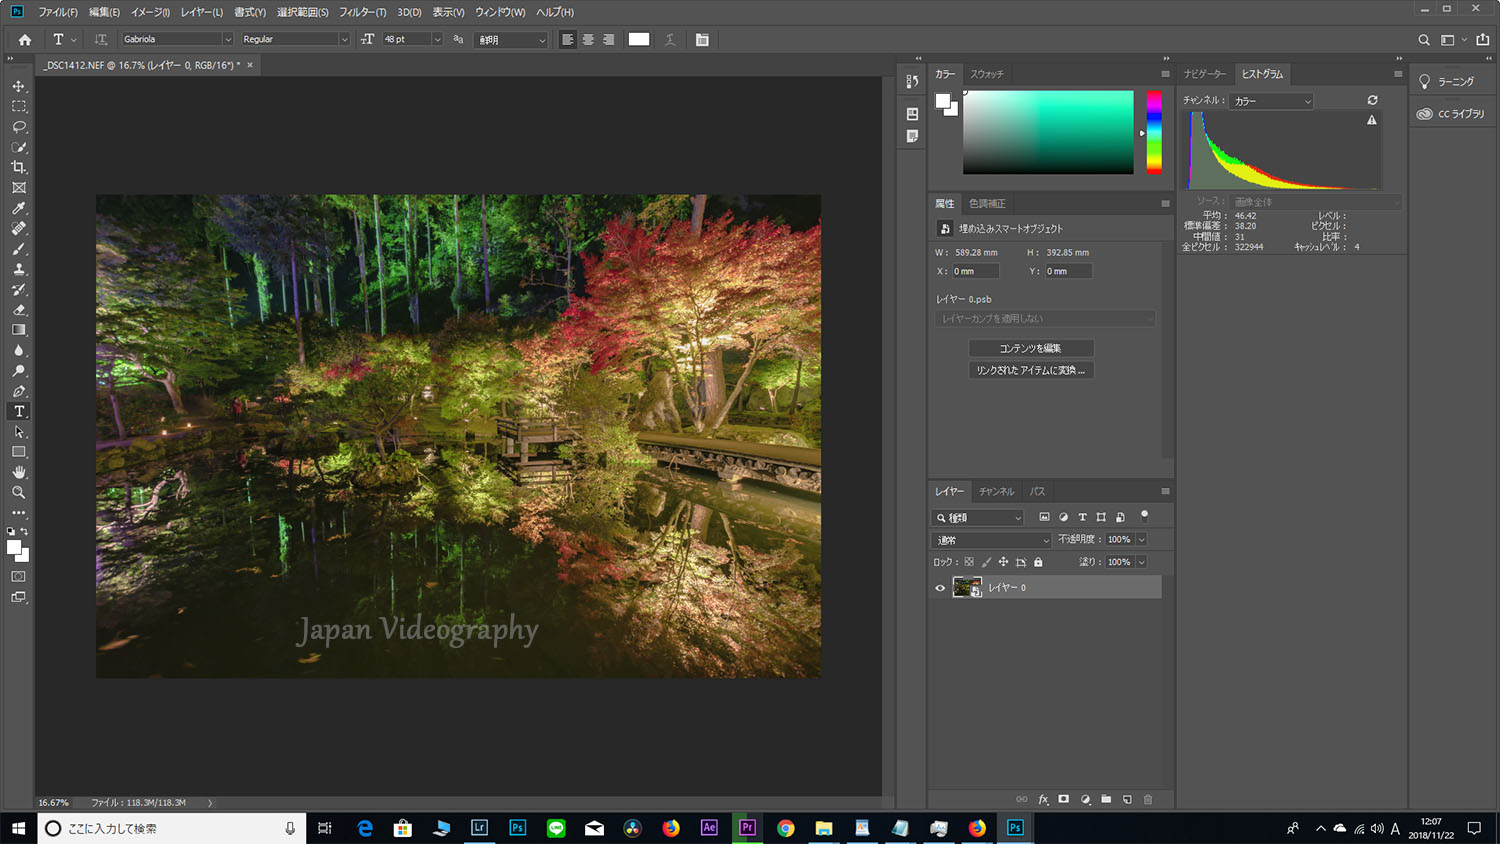 Adobe LightroomからPhotoshopに画像を送る